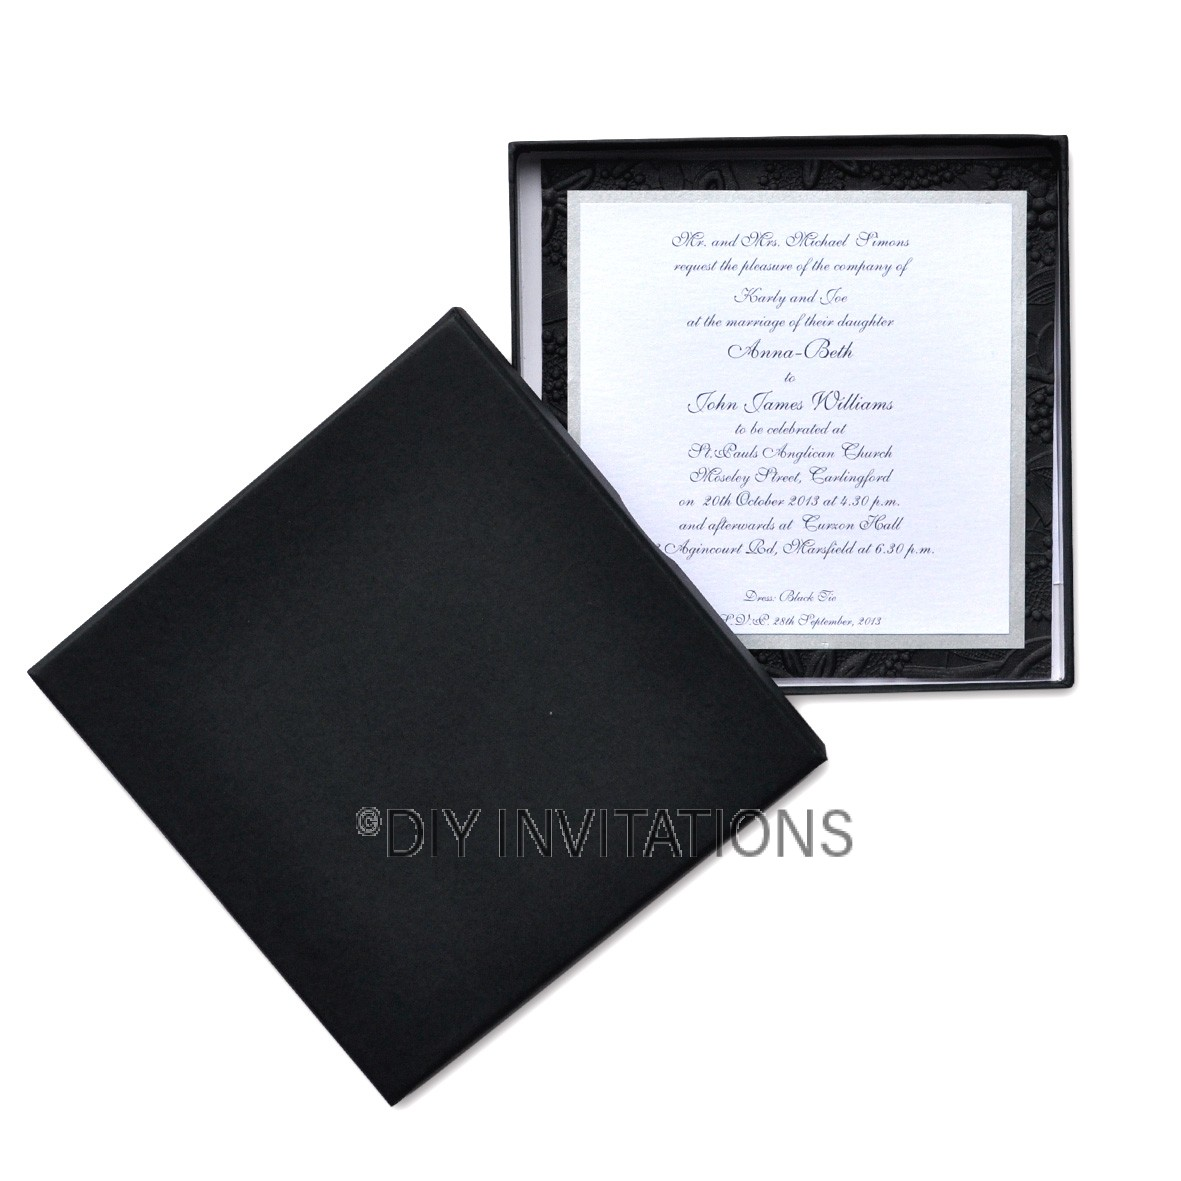 Rigid Invitation Box - Square - Black Matt (150x150mm)